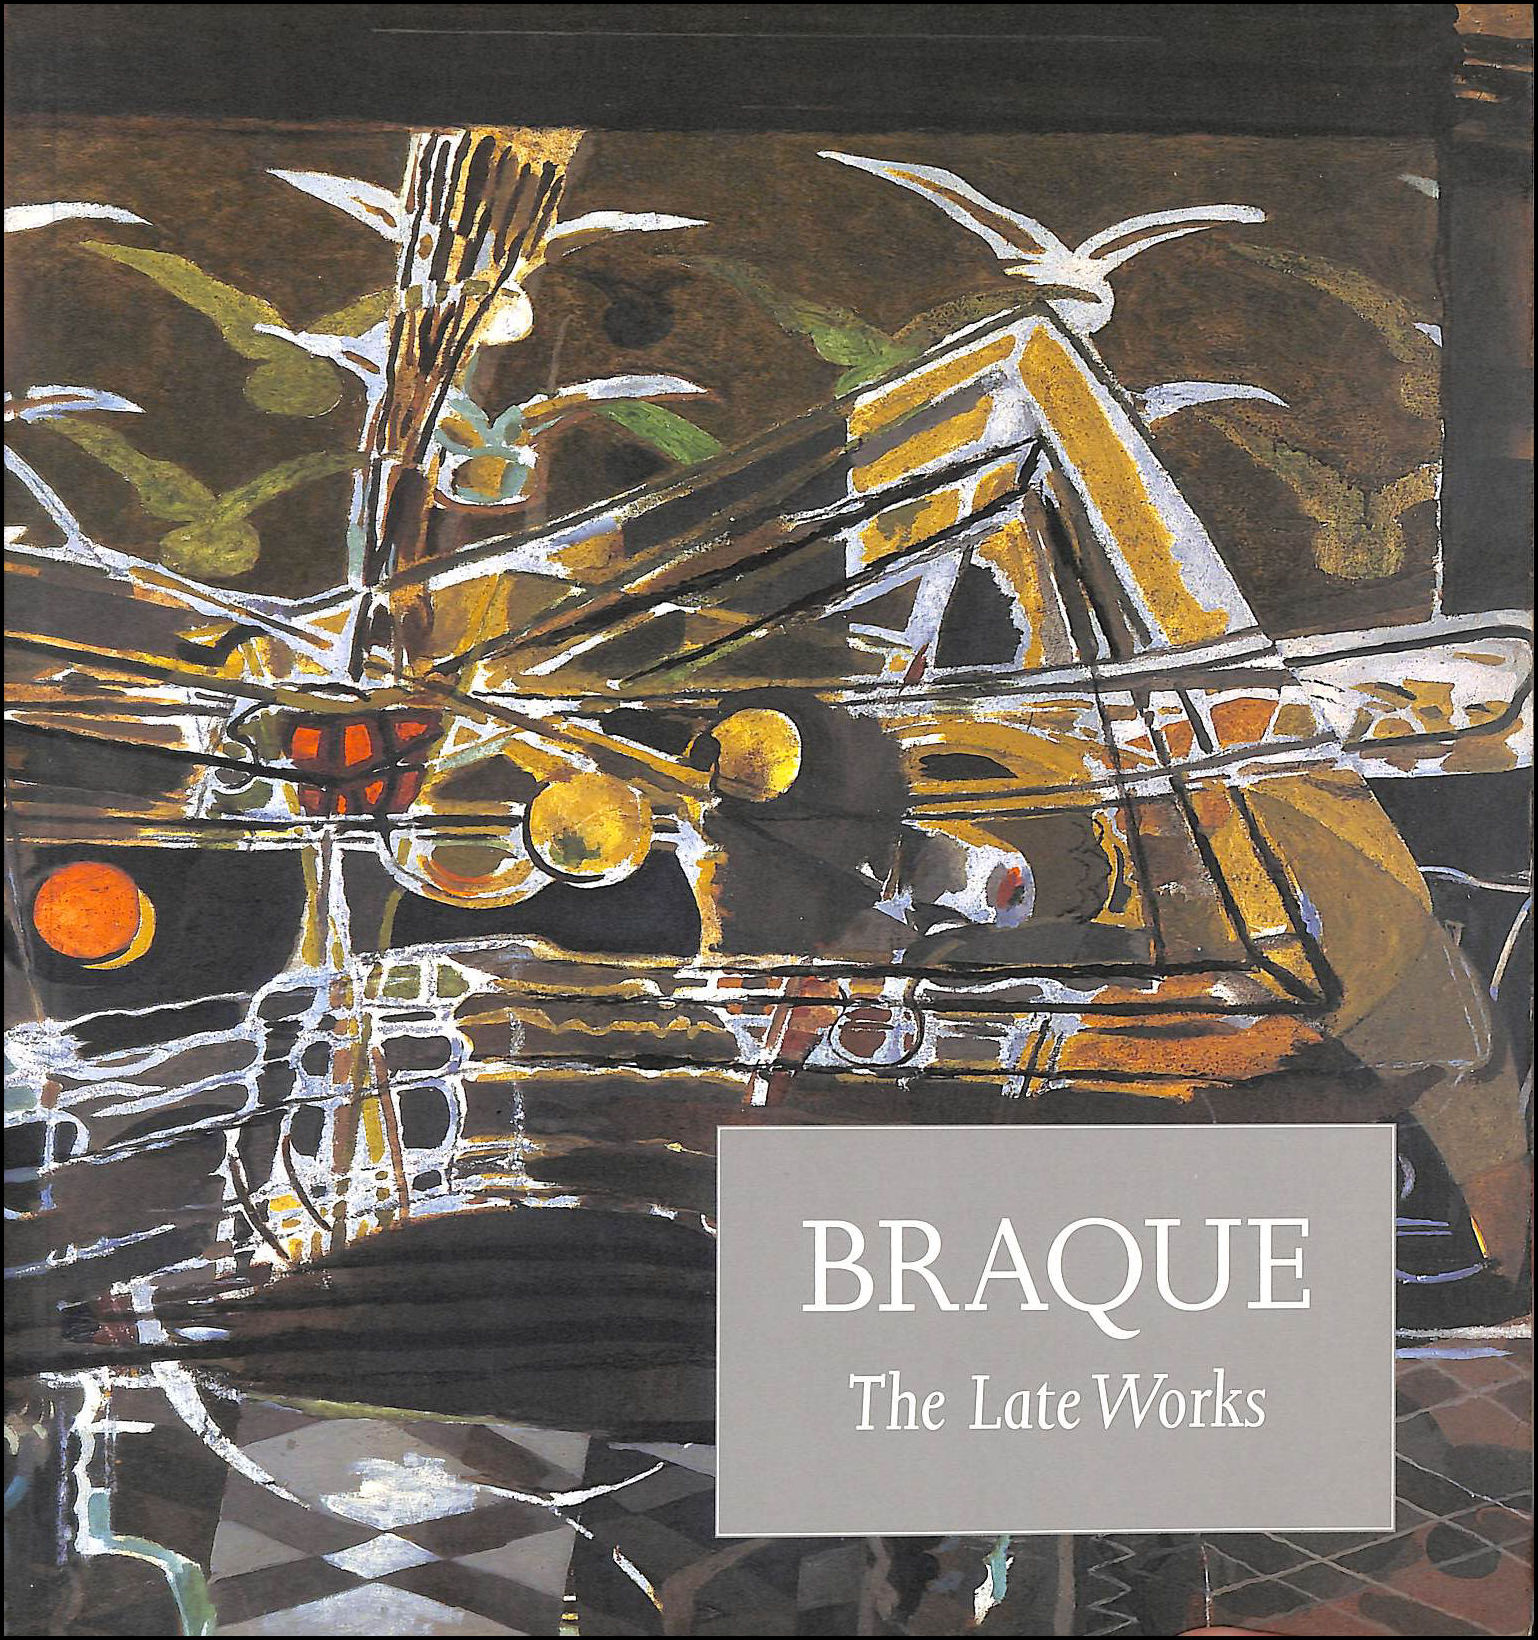 Braque: The Late Works, Golding, John; Bowness, Sophie; Monod-fontaine, Isabelle